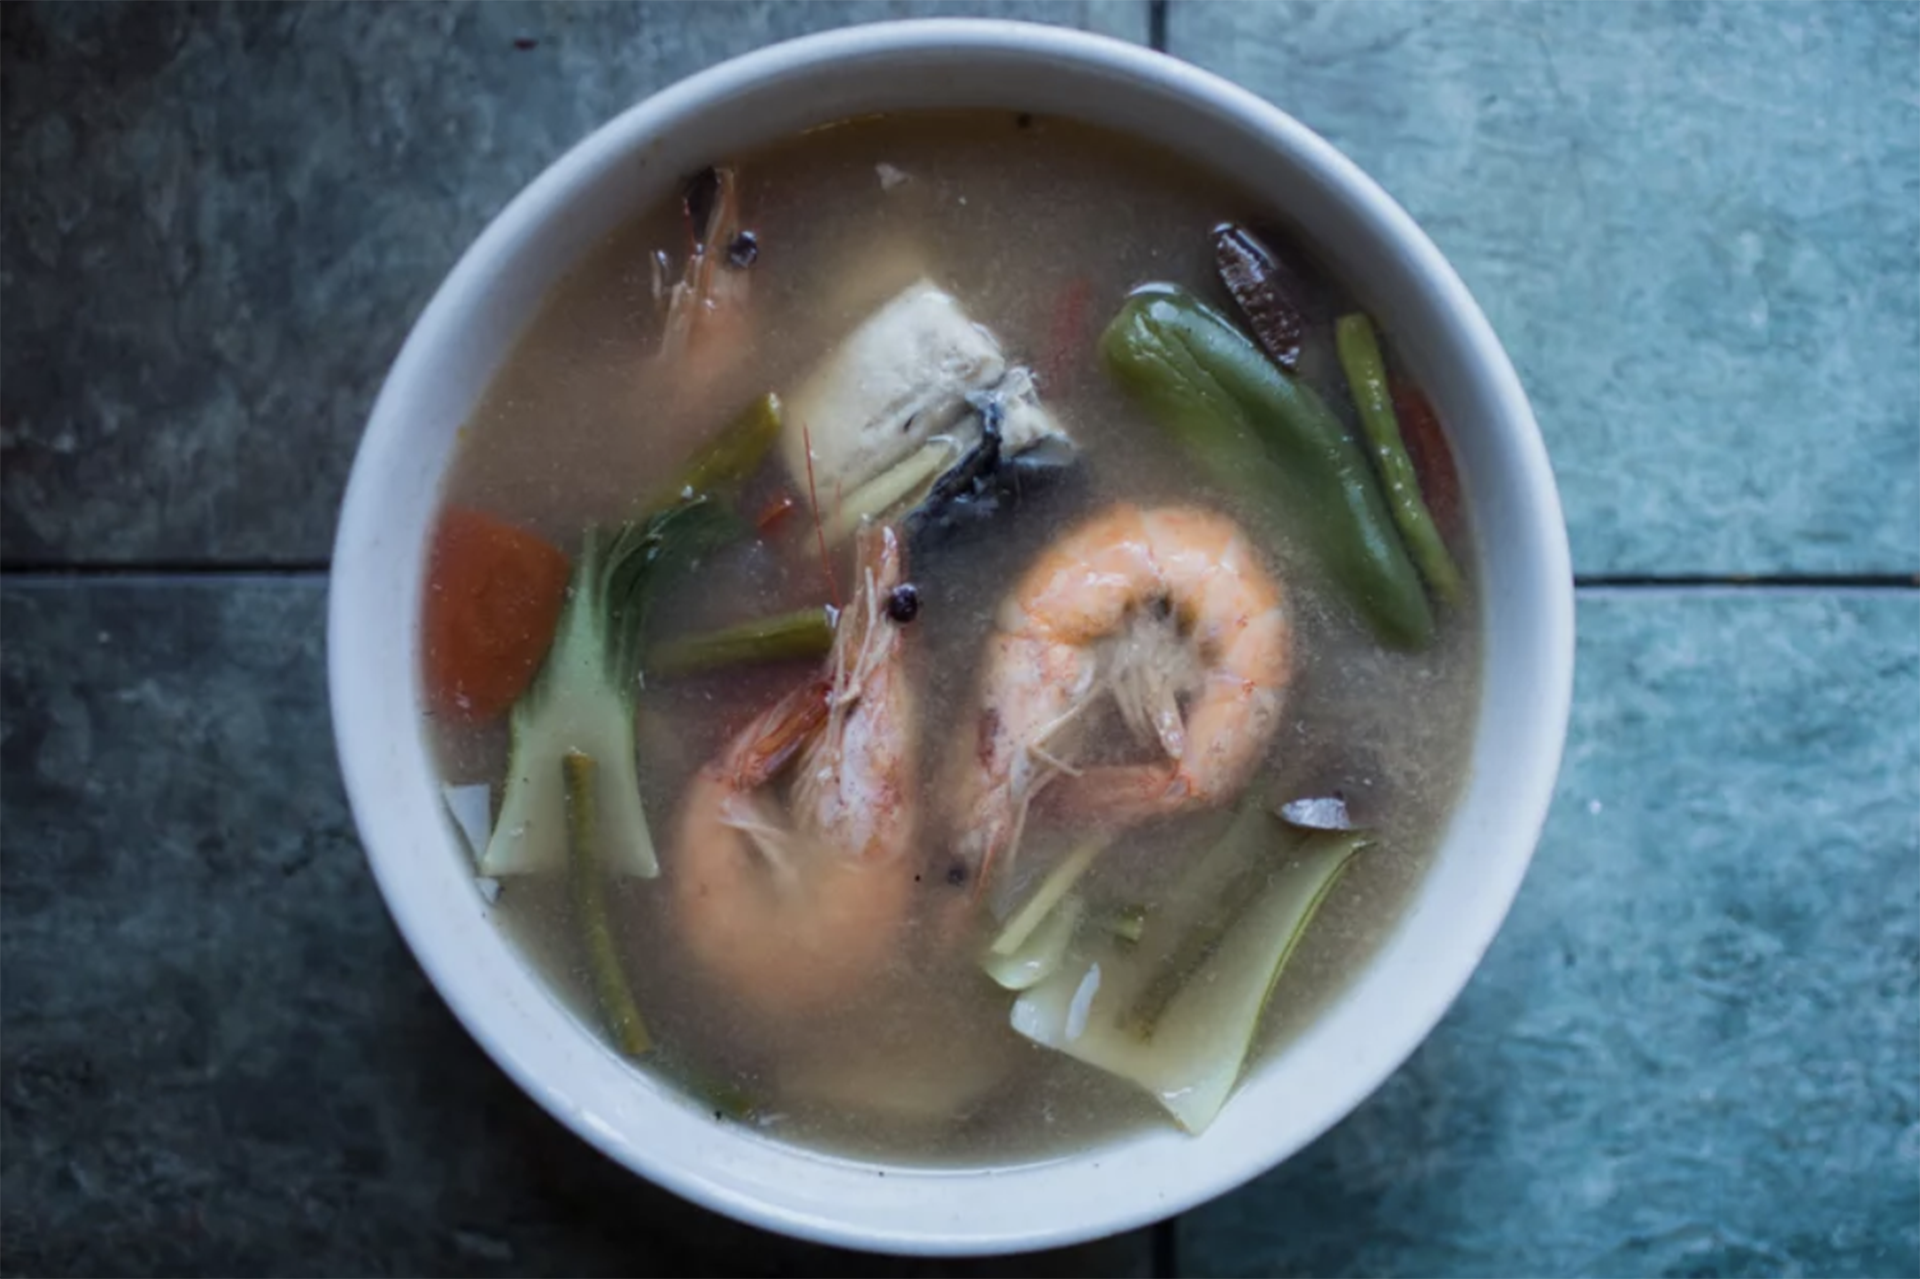 At Kuya's in San Bruno, Gilla recommends their fish dishes like bangus and sinigang.